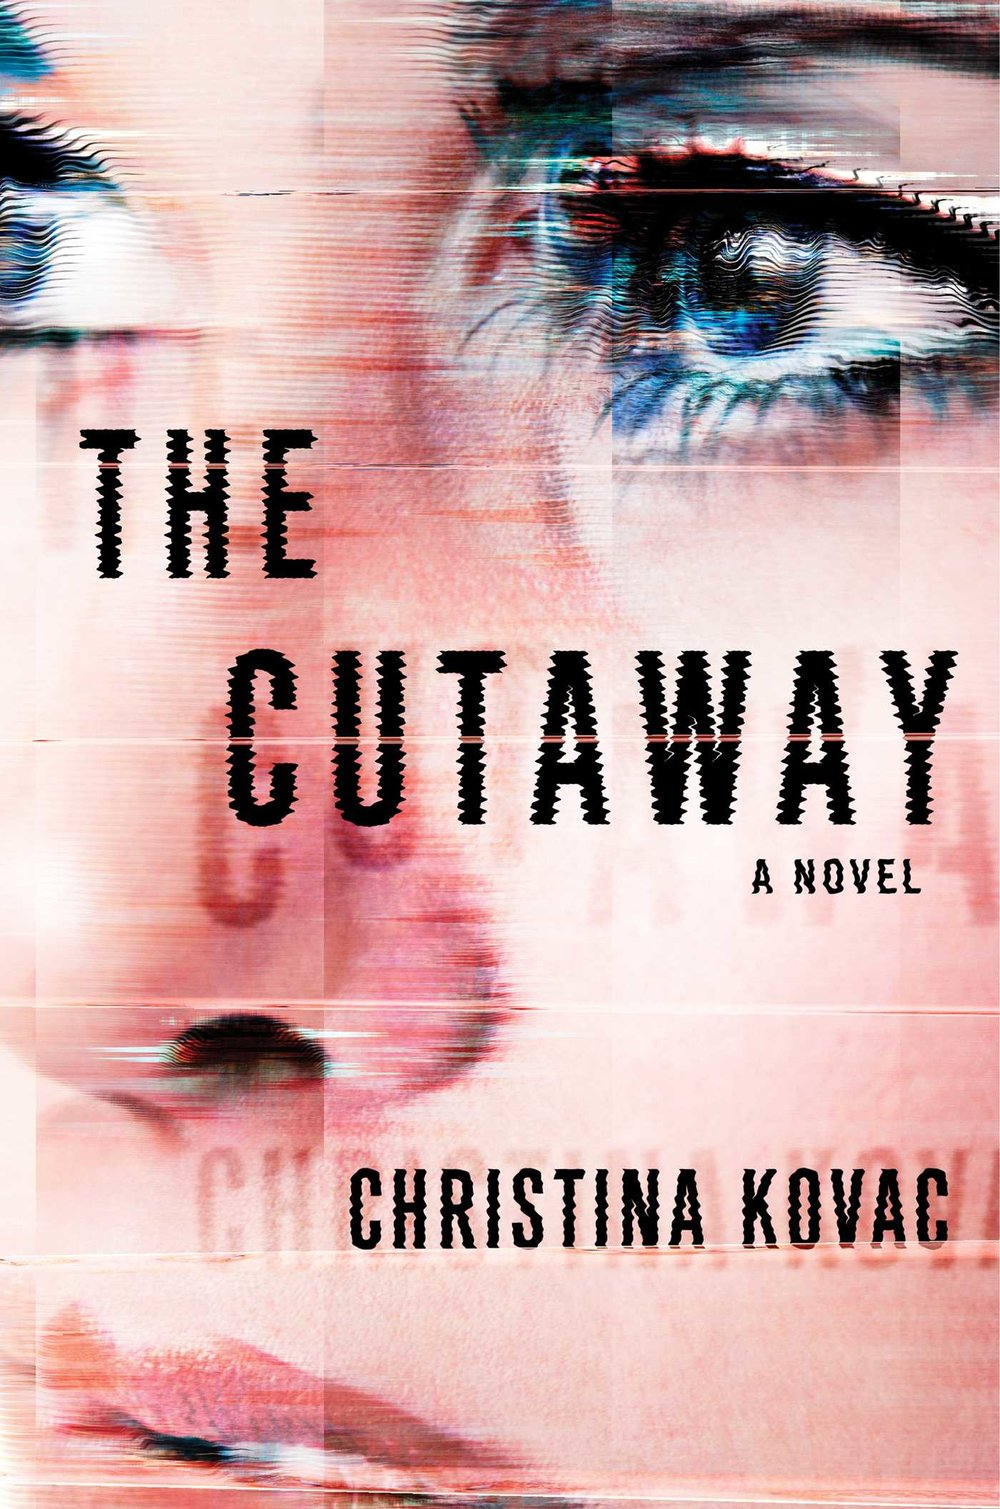 Buy Christina Kovac's novel The Cutaway